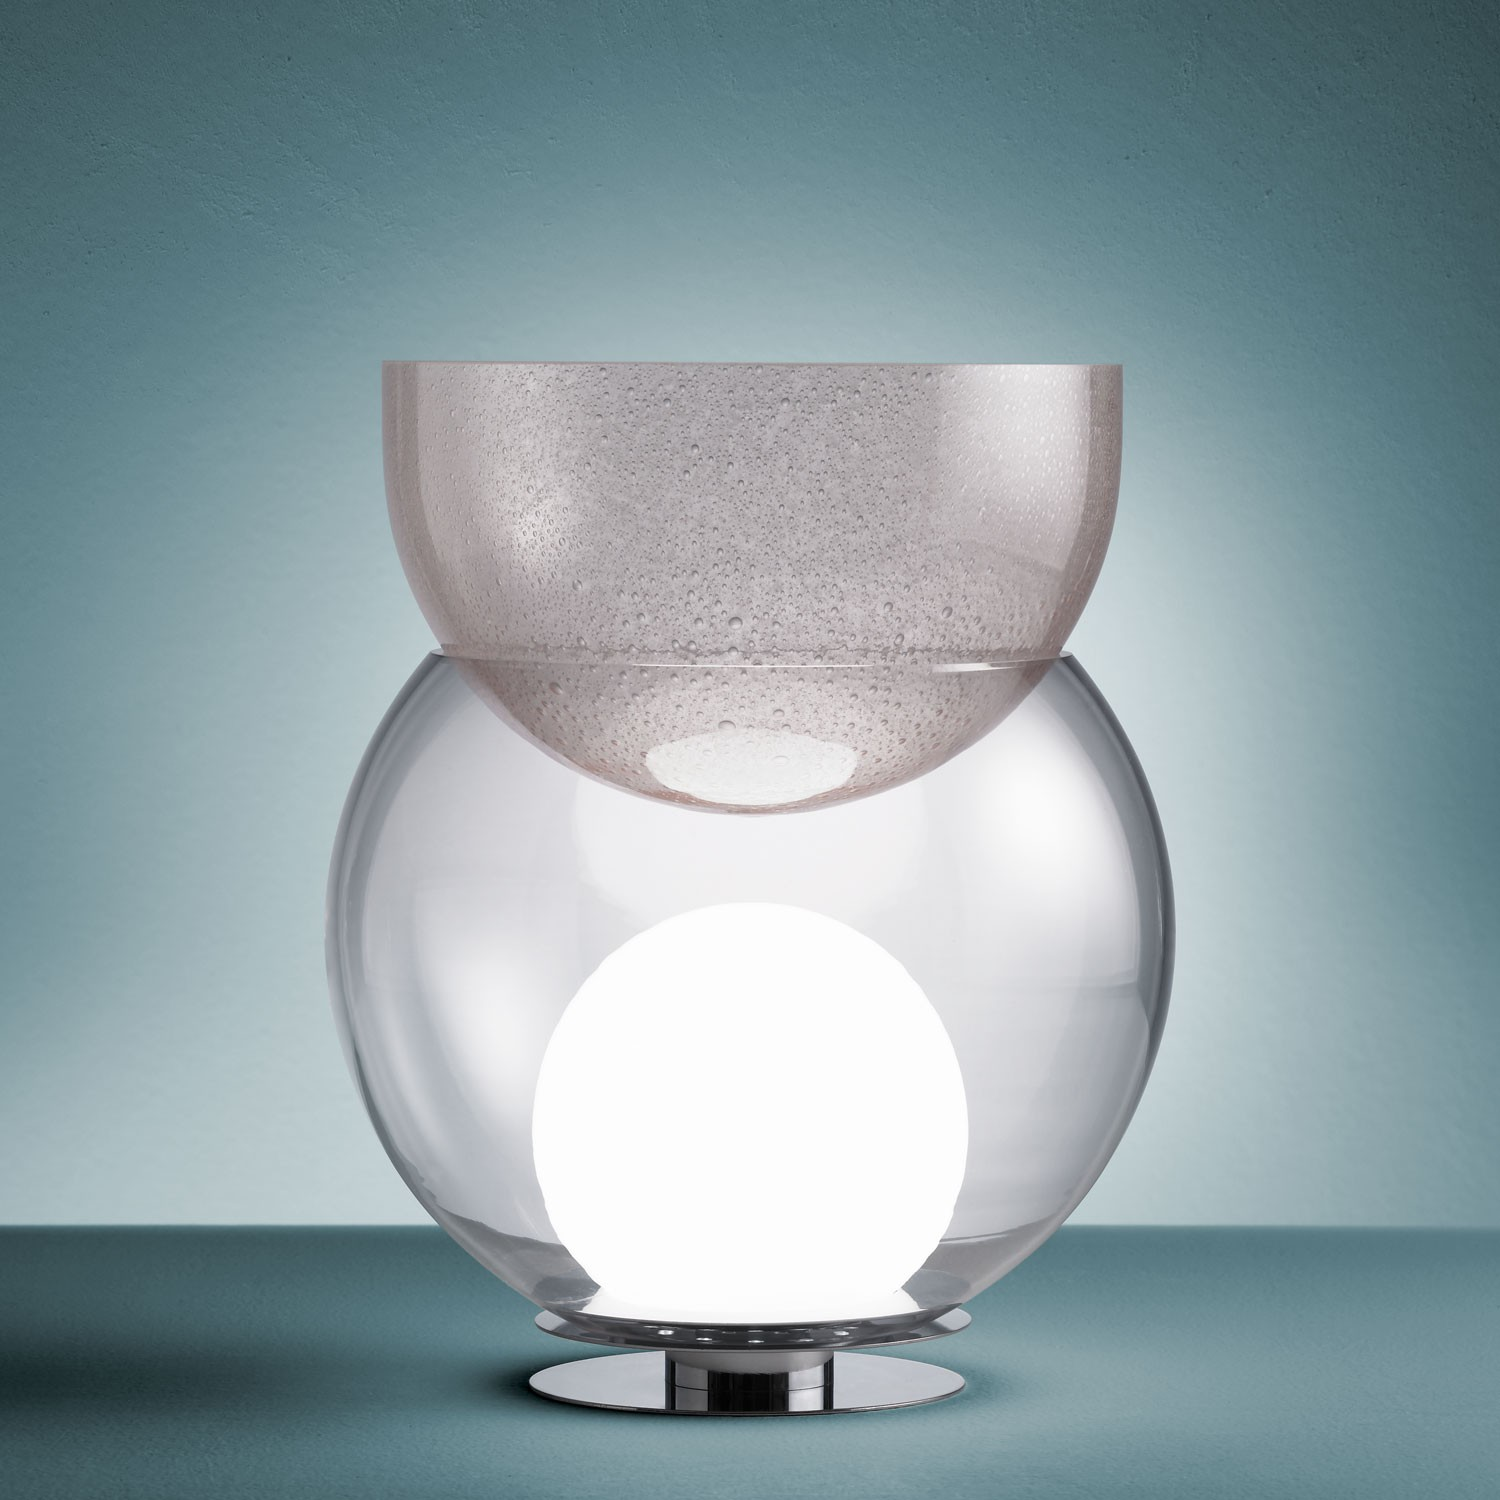 Fontana Arte Fontana Arte Giova Table Lamp